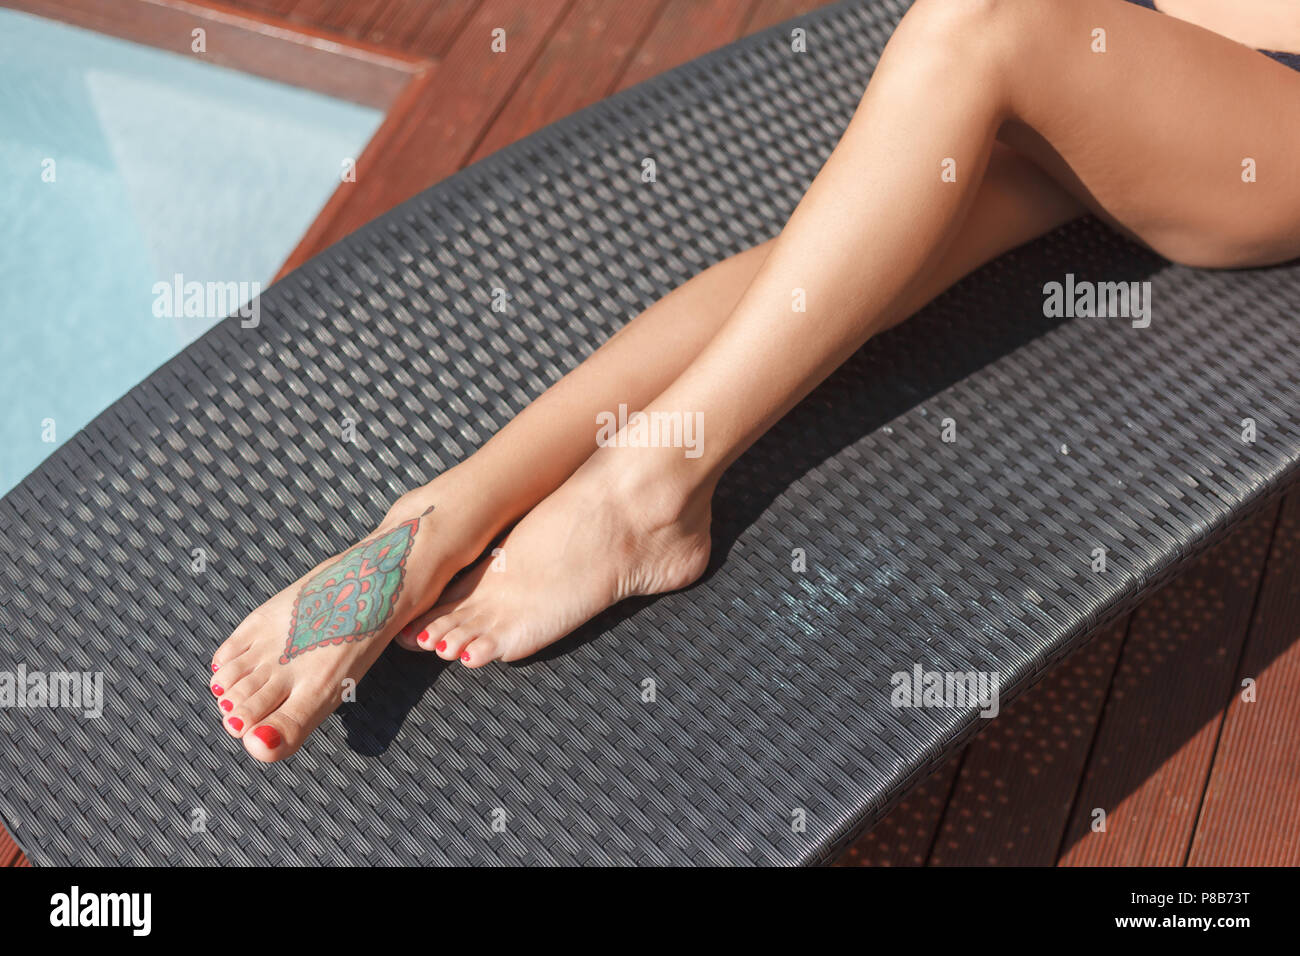 cropped shot of woman with tattoo on foot lying on sun lounge - Stock Image